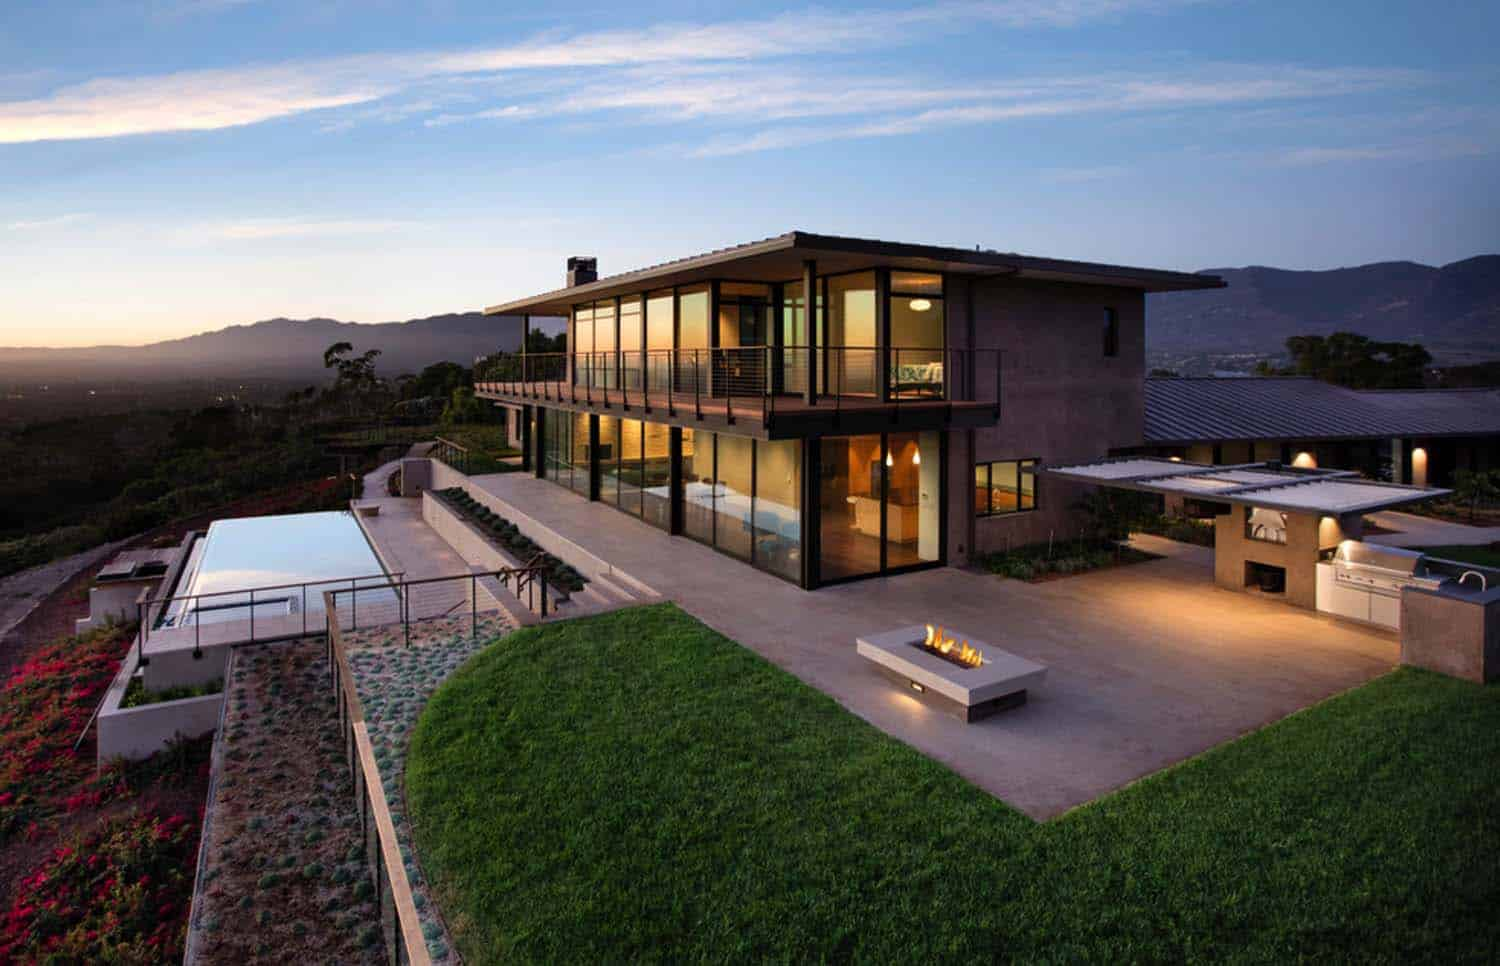 Contemporary hilltop home in California gets brilliant